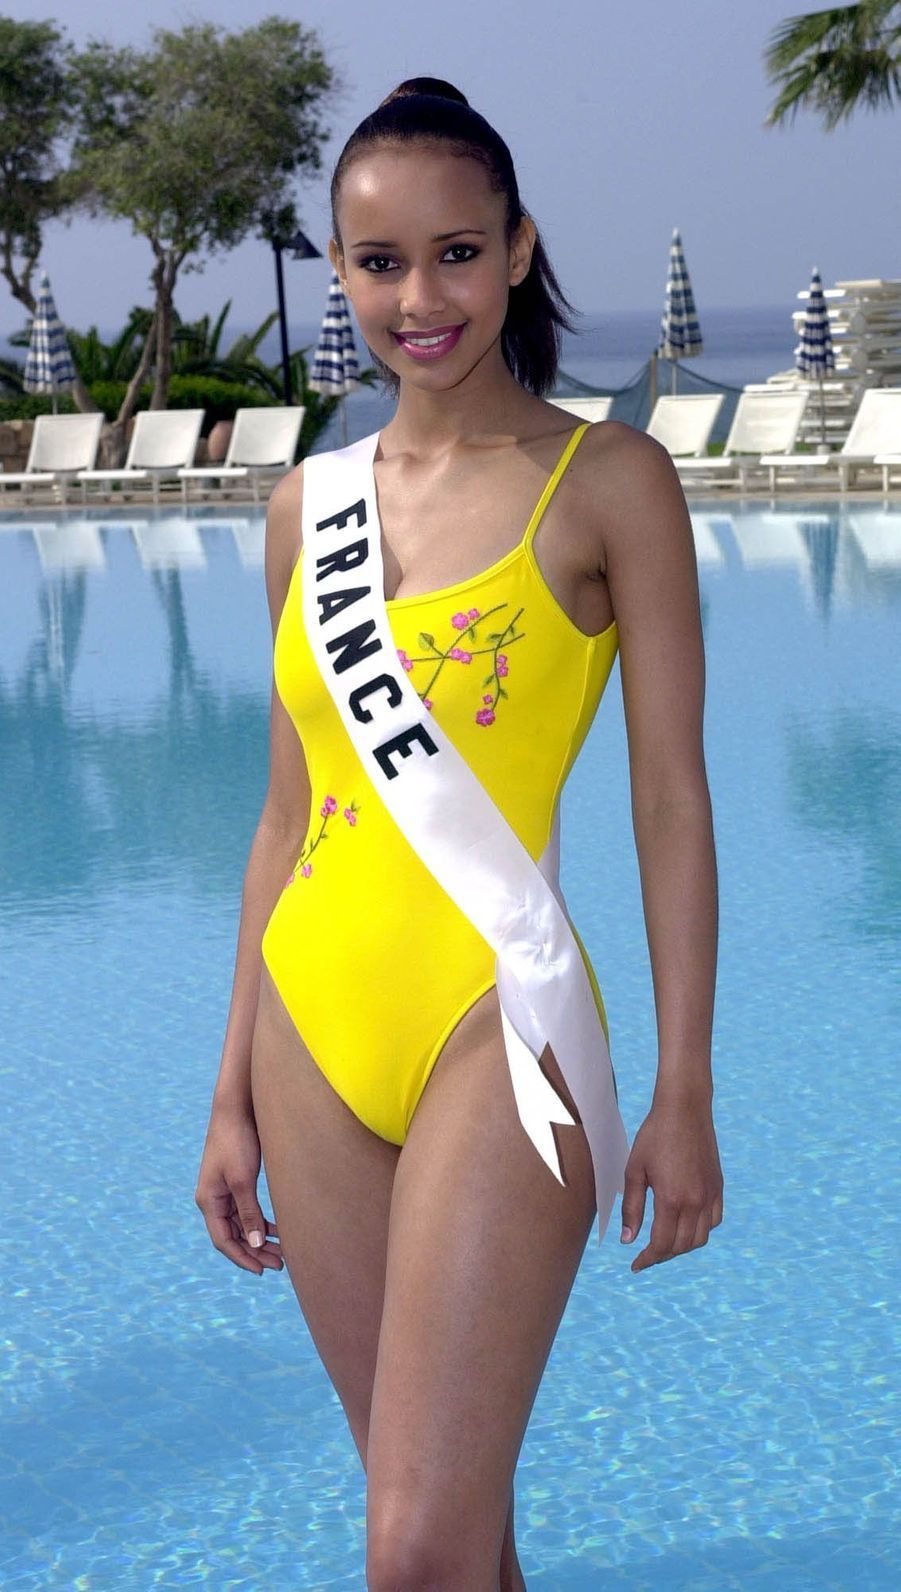 Sonia Rolland, Miss France 2000